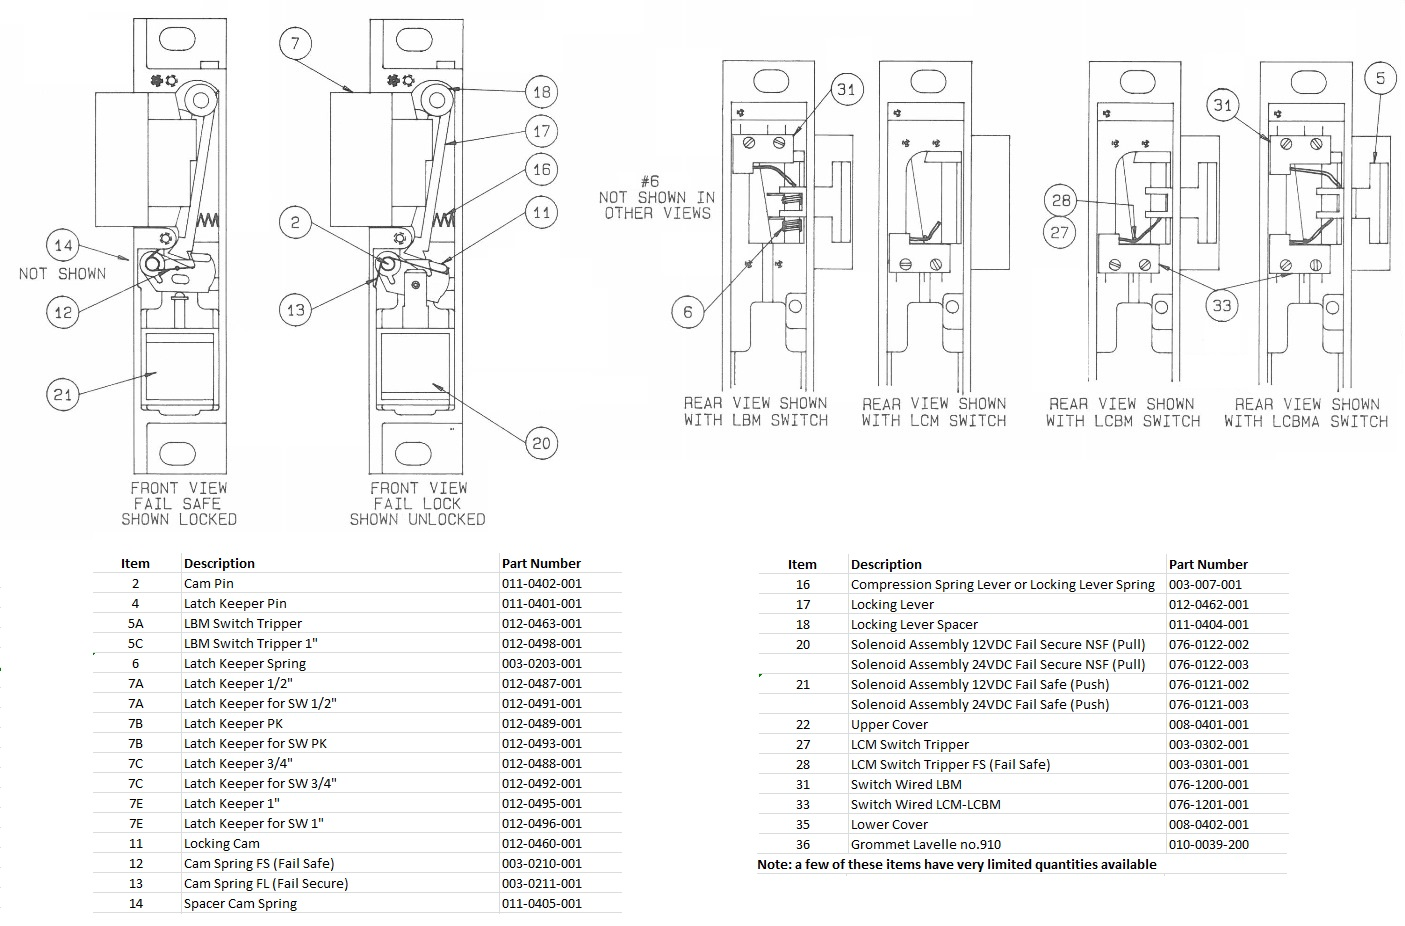 Folger Adam 300 Parts Diagram available hes folger adams 300 series solenoid 076 0122 003 24vdc fail secure adams rite electric strike wiring diagram at n-0.co